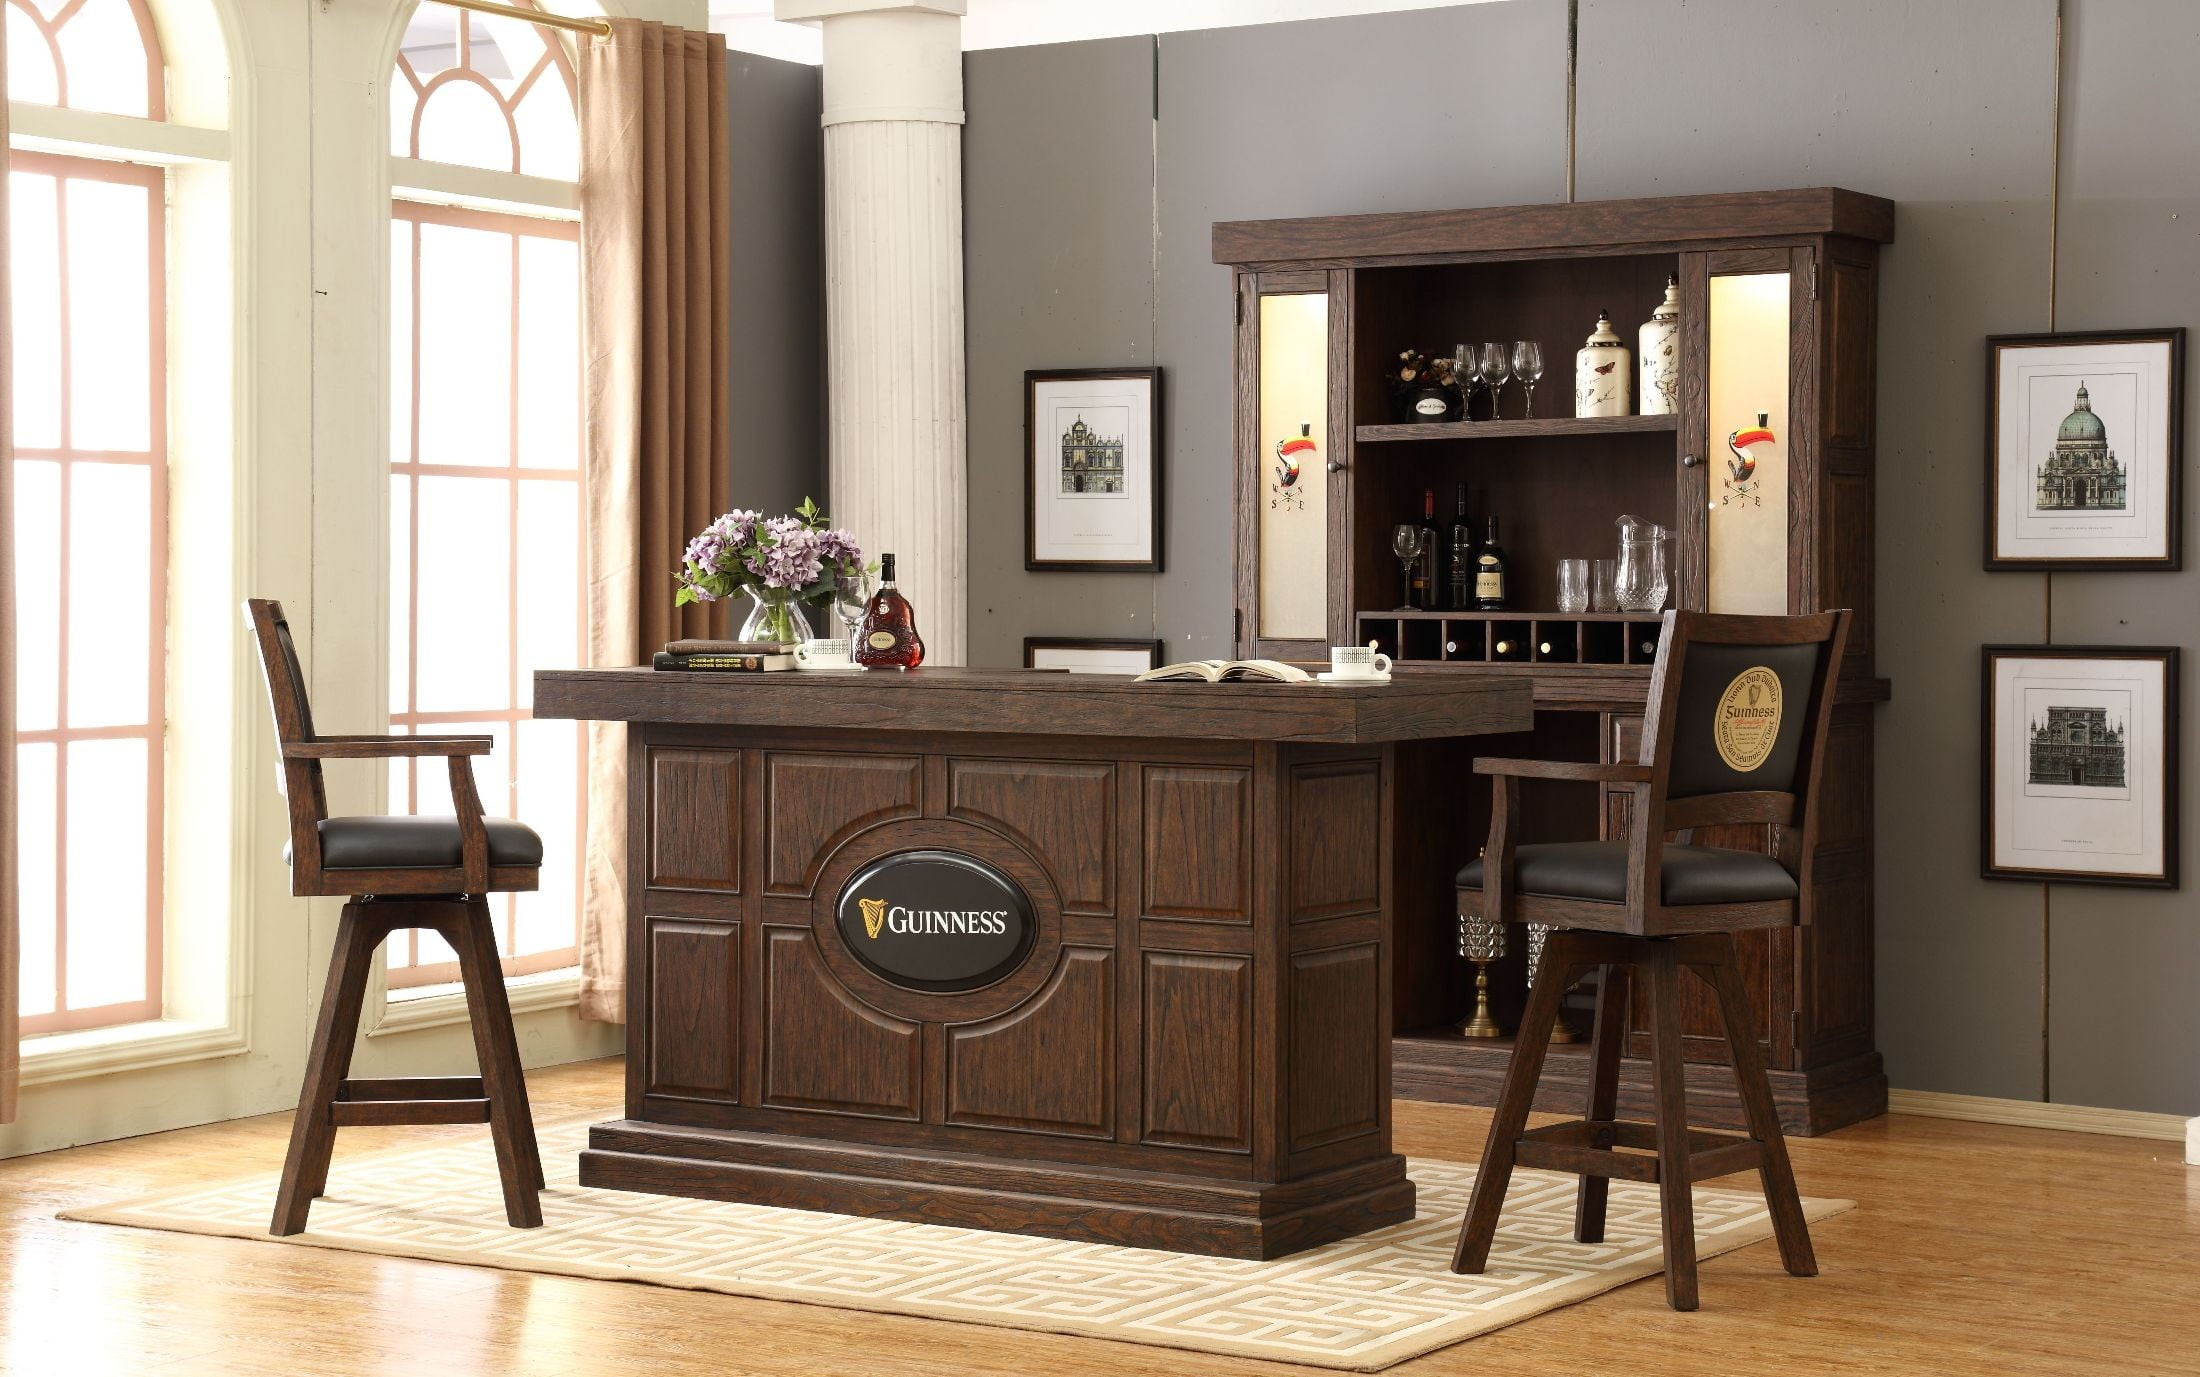 Guinness Antique Walnut 82 Quot Bar Set From Eci Furniture